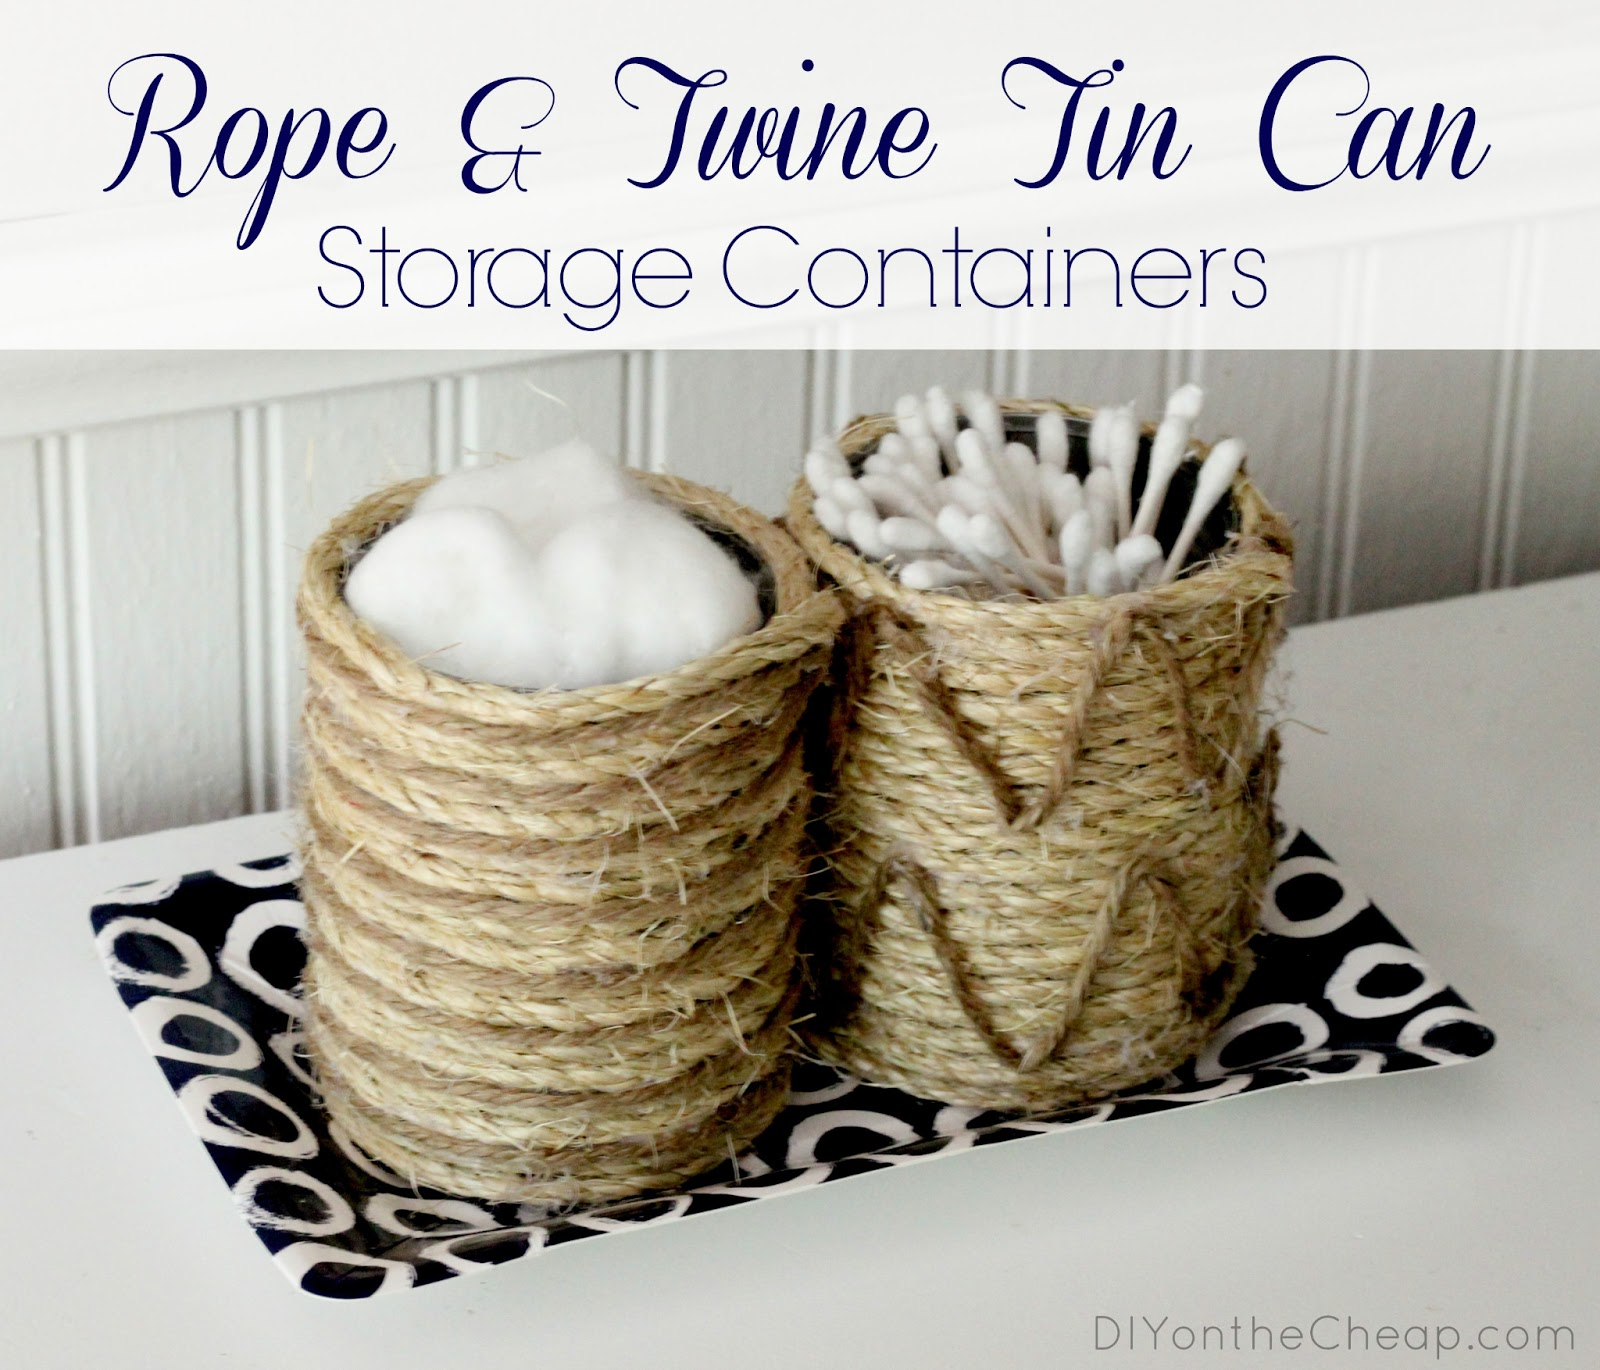 rope+and+twine+tin+cans.jpg